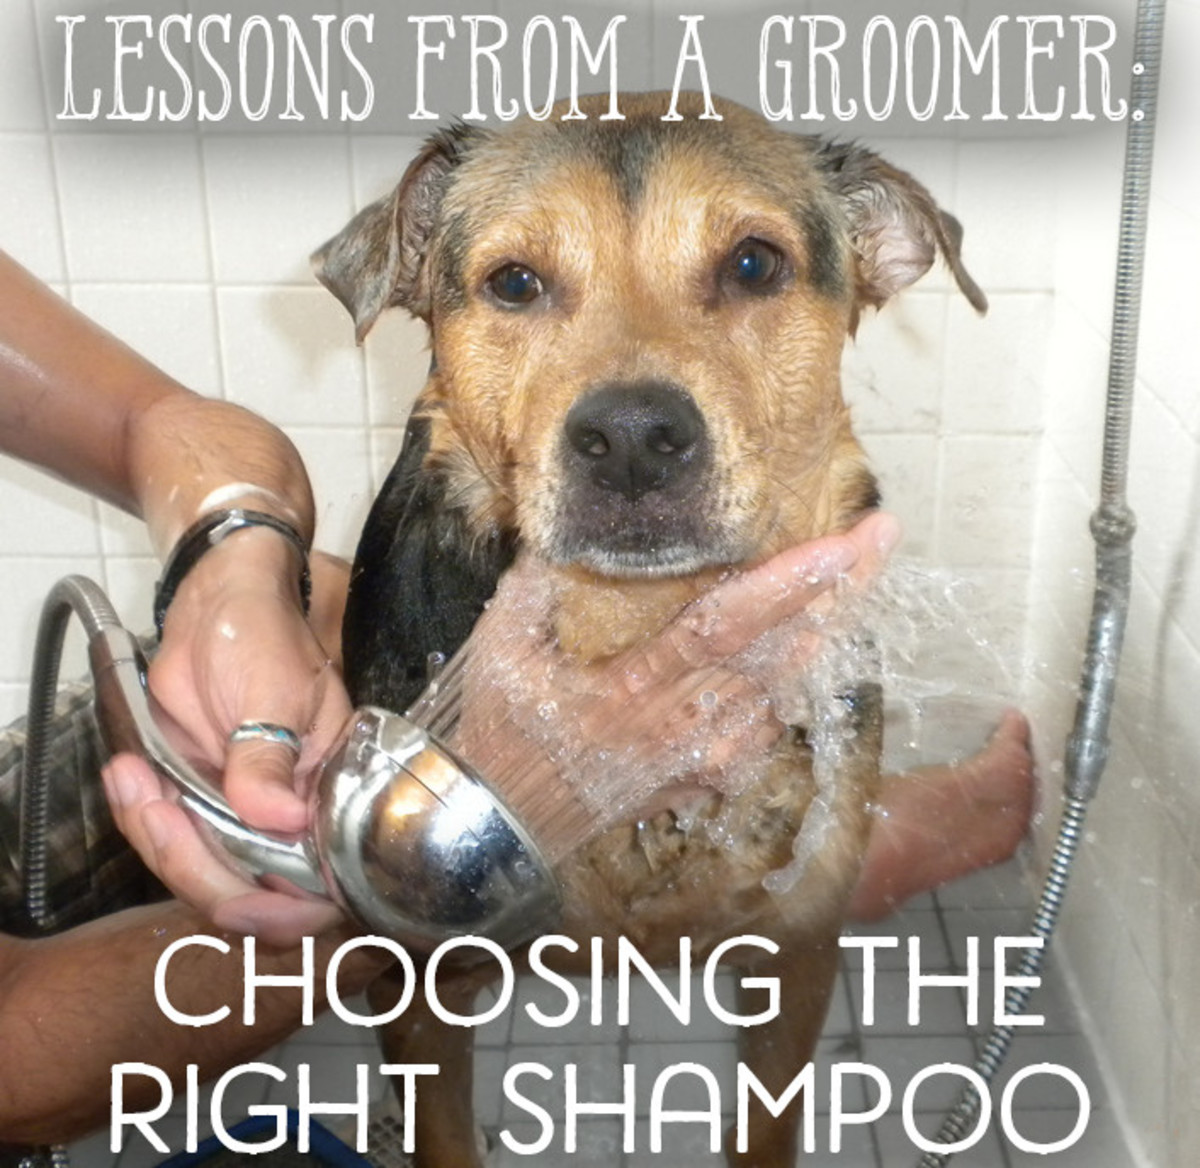 Lessons From a Groomer: Shampoo for Fleas, Dandruff & More